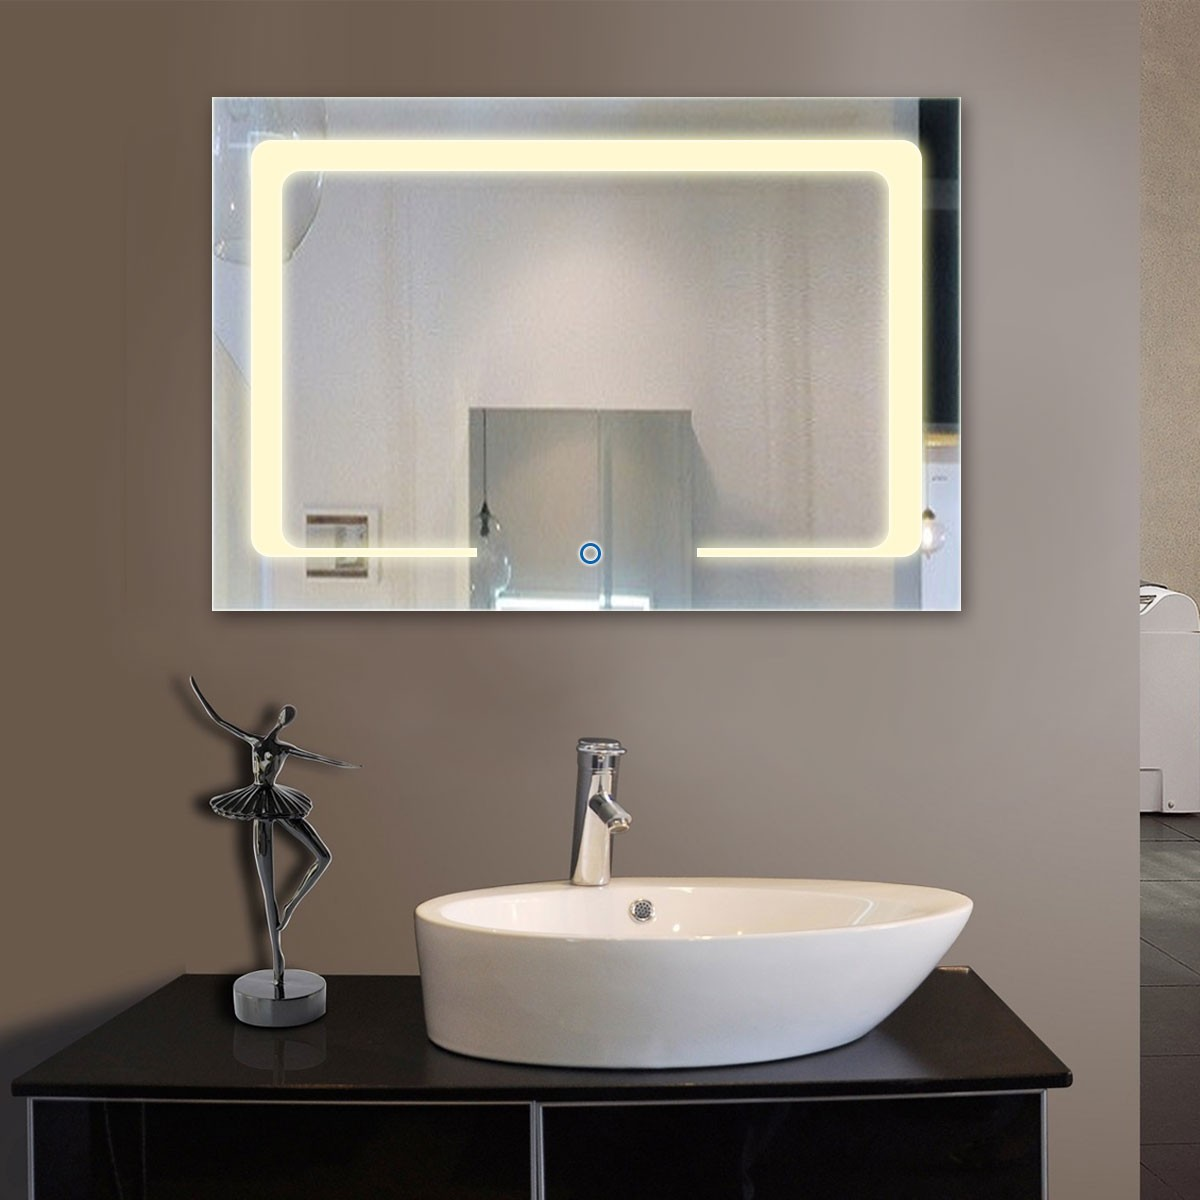 36 x 28 In Horizontal LED Bathroom Mirror with Touch Button (DK-OD-CL129)